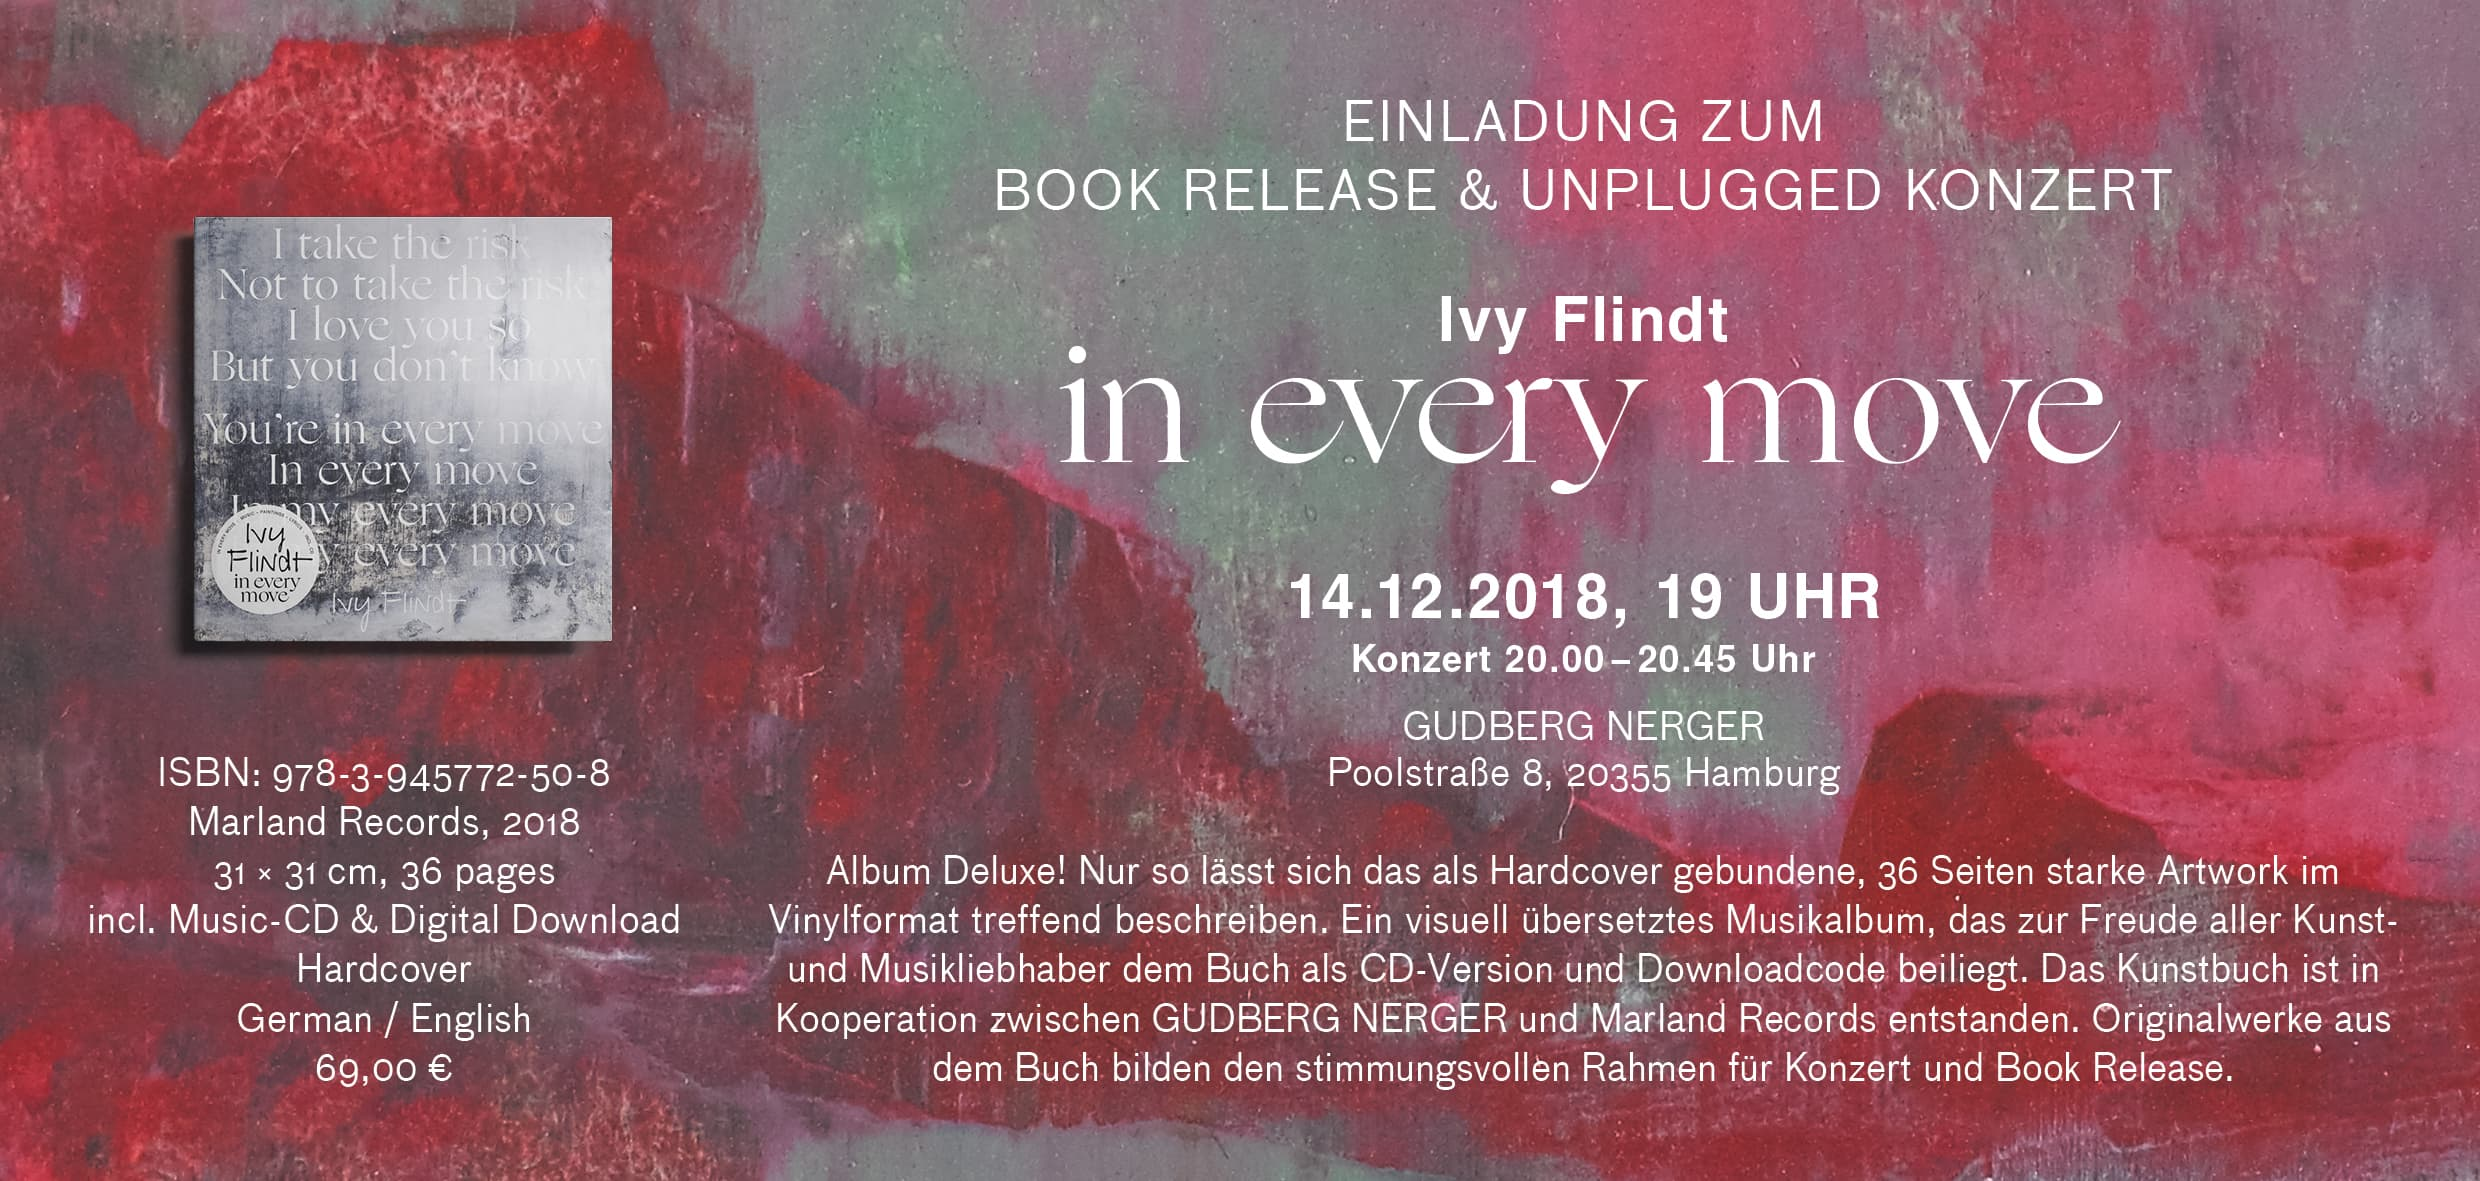 14.12.2018 7 pm ARTBOOK RELEASE, PAINTINGS and CONCERT